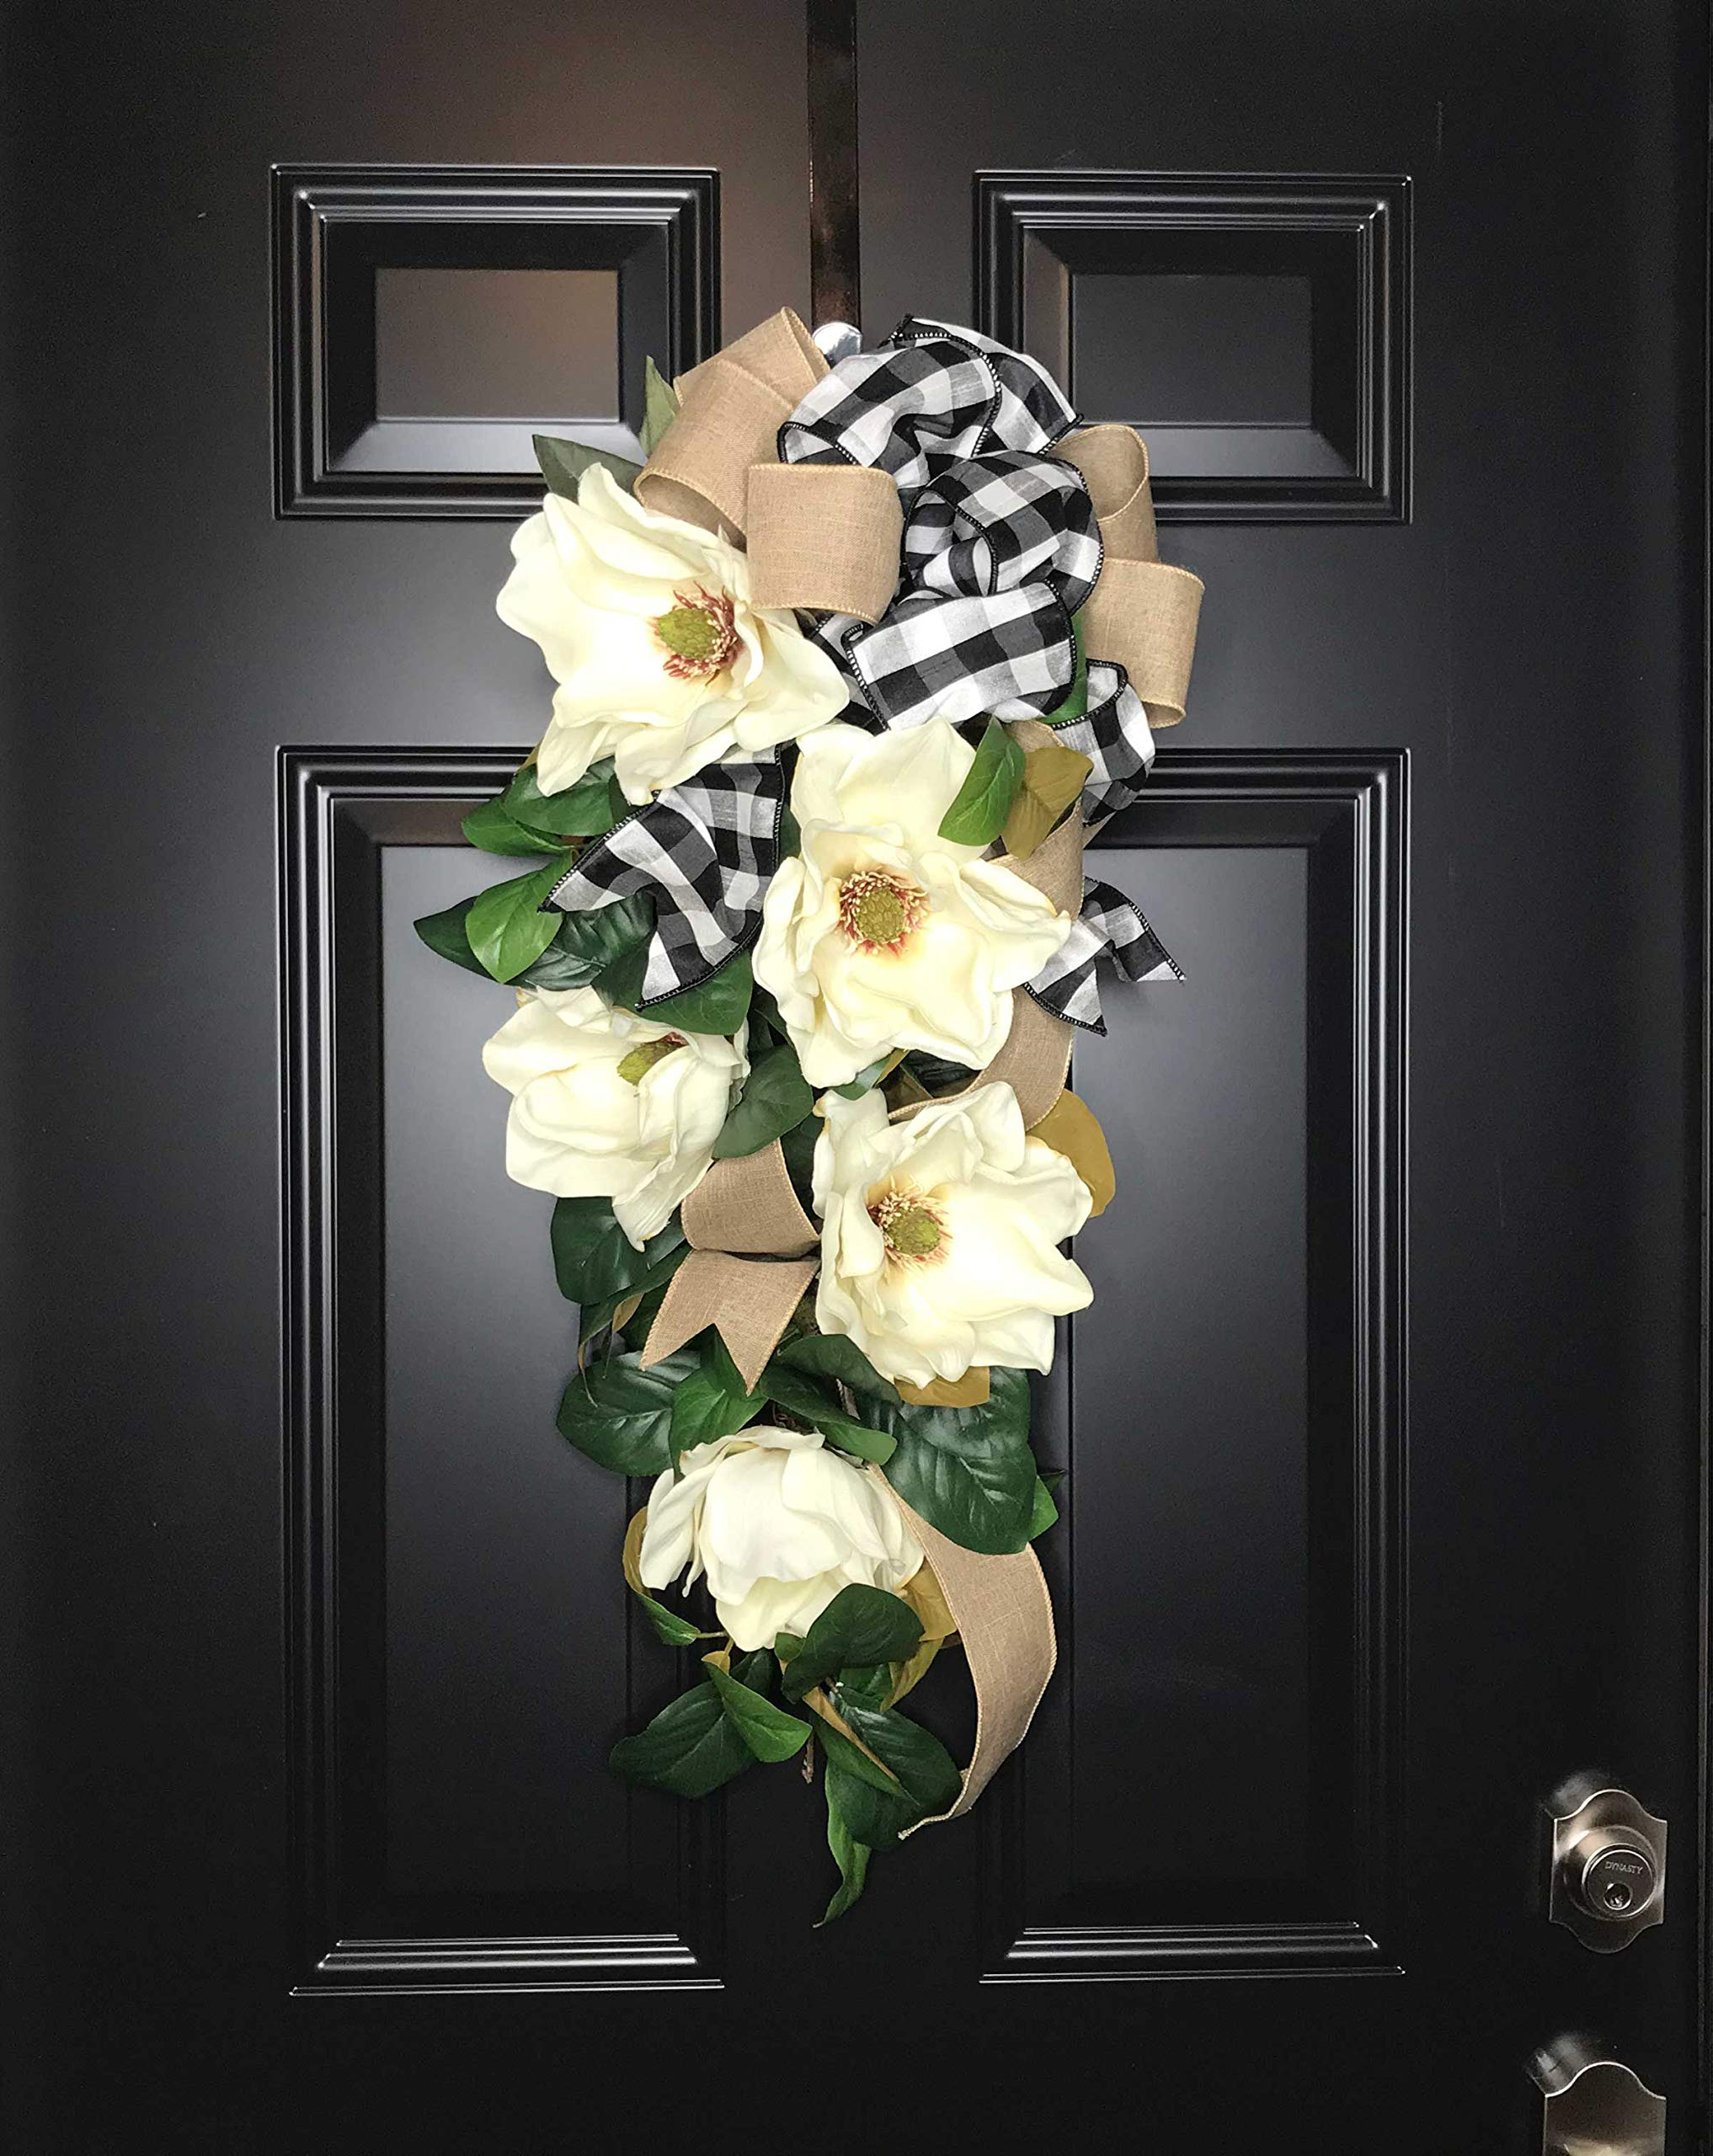 Large Southern Magnolia Teardrop Floral Swag Wreath w/Buffalo Plaid/Check Bow for Front Door Porch Indoor Wall Farmhouse Decor Spring Springtime Summer Summertime Year Round, Handmade, 30''L x 18'' W by Wreath and Vine, LLC (Image #6)